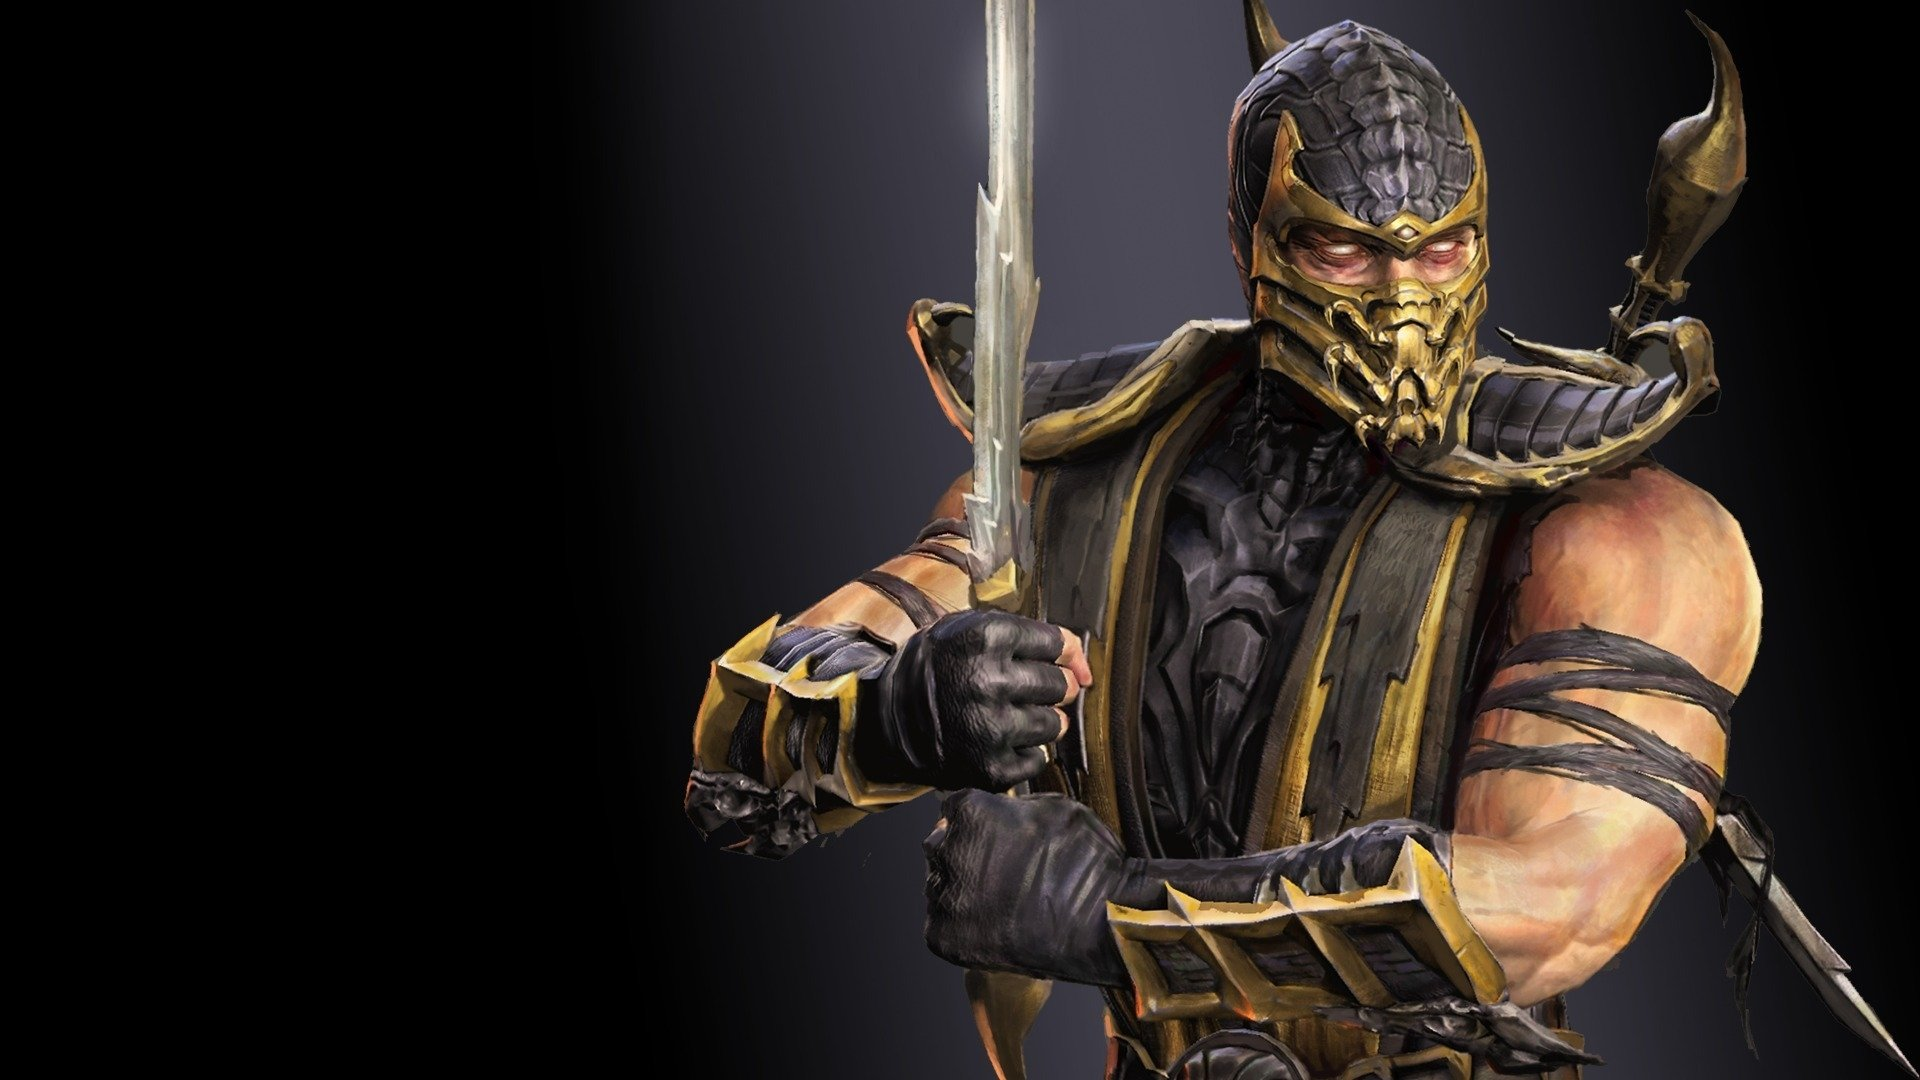 35 Scorpion Mortal Kombat HD Wallpapers